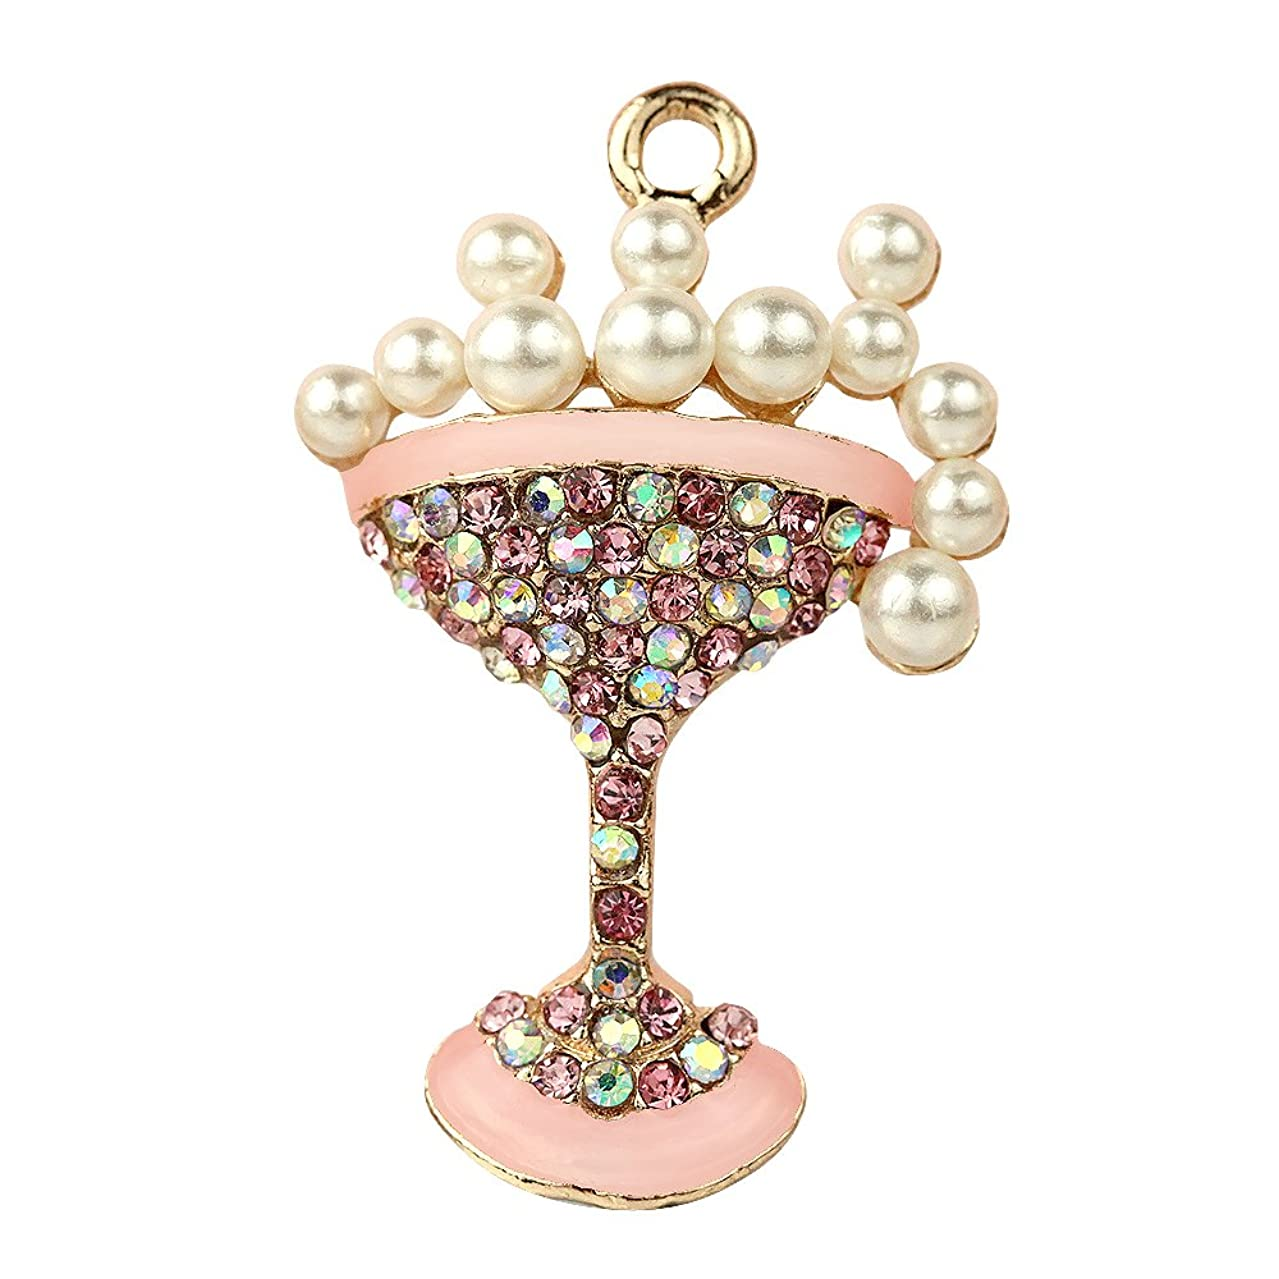 Creative DIY Elegant Pink Crystal Champagne Cocktail Charms Pendants Wholesale (Set of 3) MH631